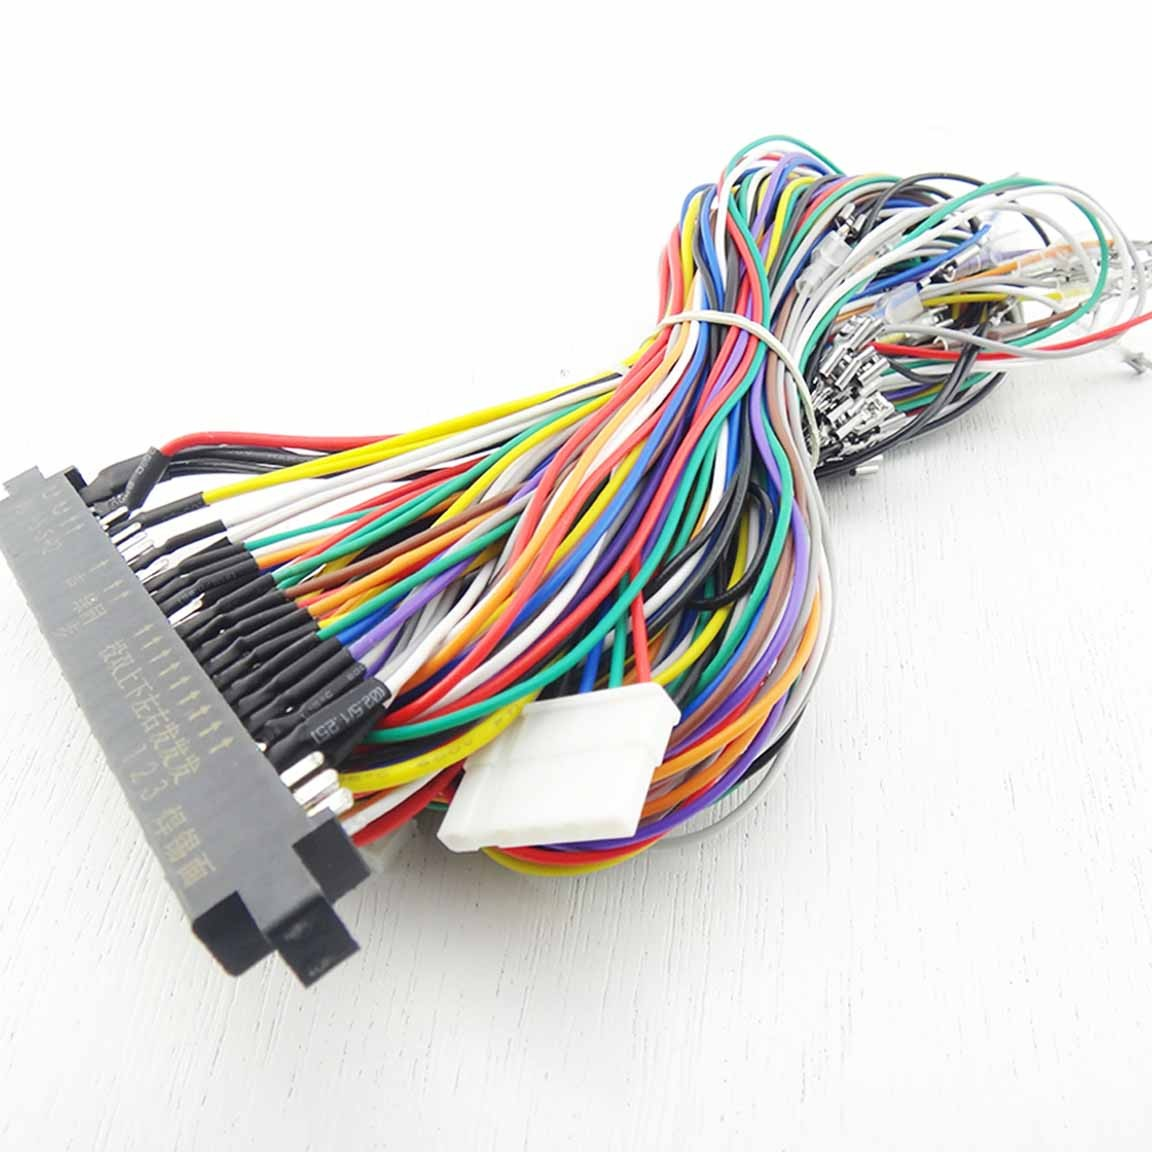 [ZTBE_9966]  Arcade Jamma Harness 6 buttons & -5v (4.8mm) - jammastar.com | Icade Jamma Wiring Harness |  | jammastar.com